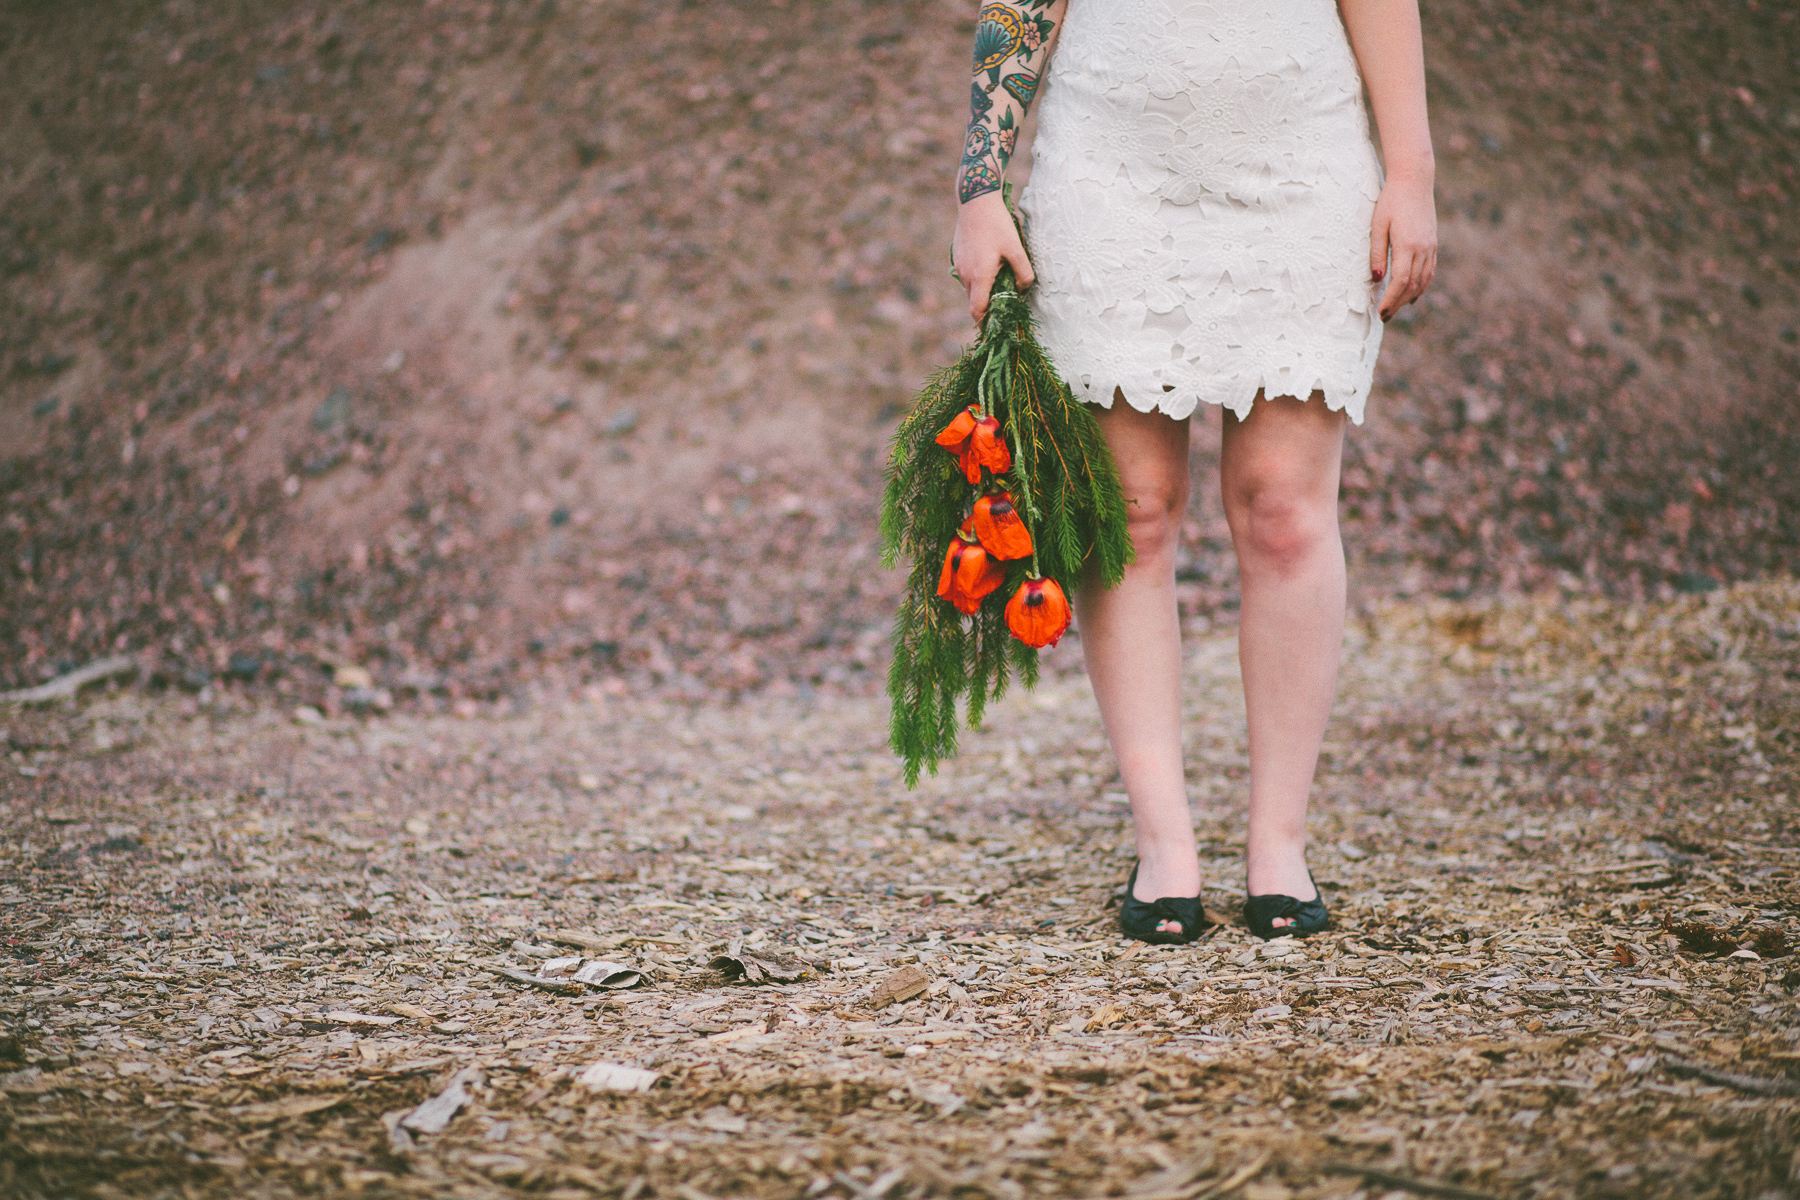 Sara-Bohemian-Moody-Alternative-Wedding-Photography-Inspiration-52